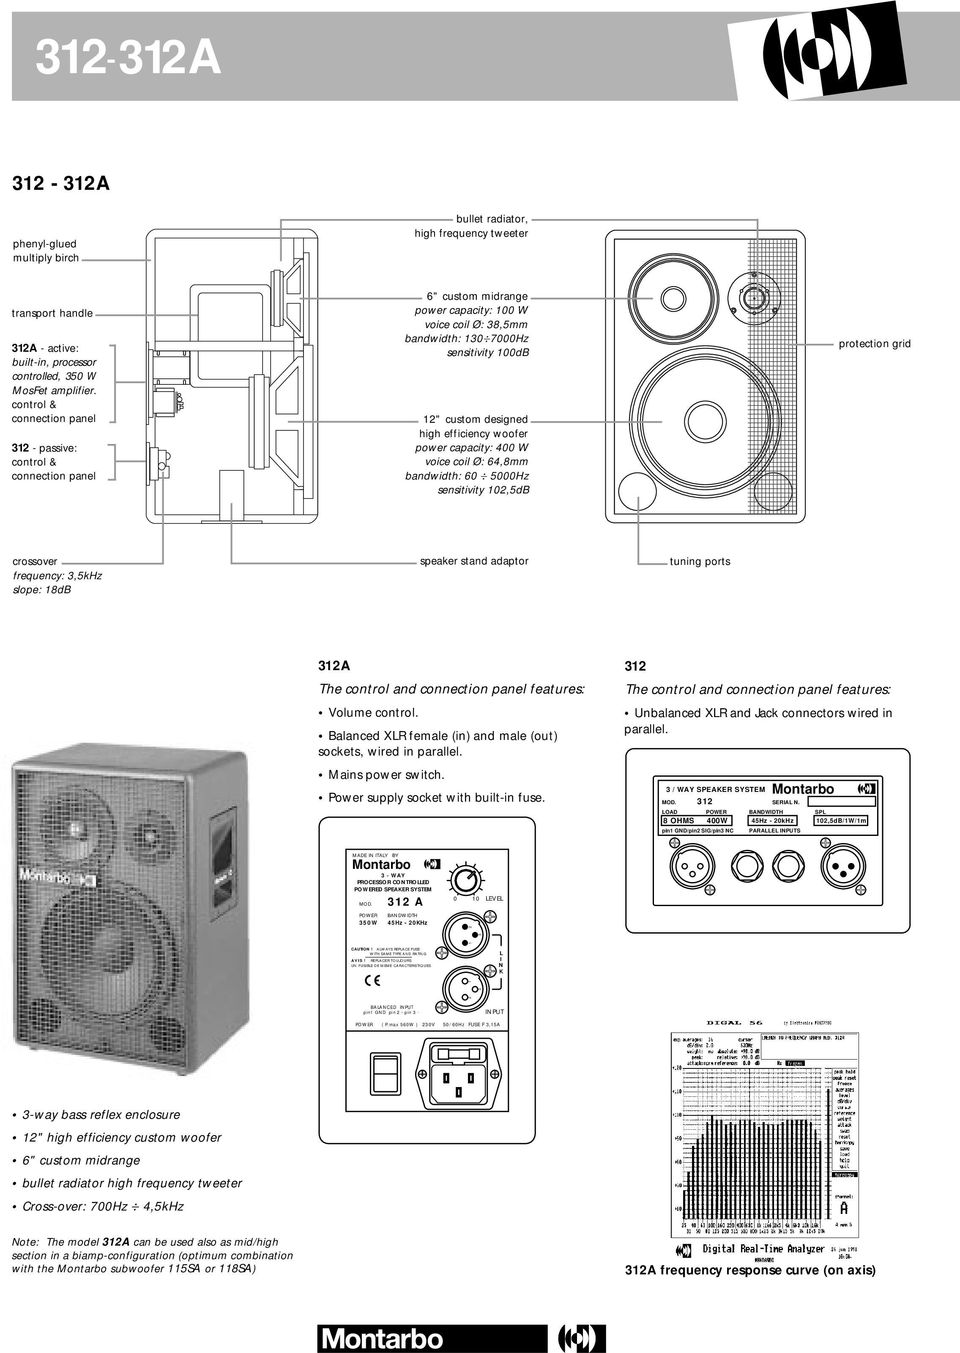 A Pdf Fuse Box Processor 5000hz Sensitivity 1025db Protection Grid Crossover Frequency5khz Slope 18db Speaker